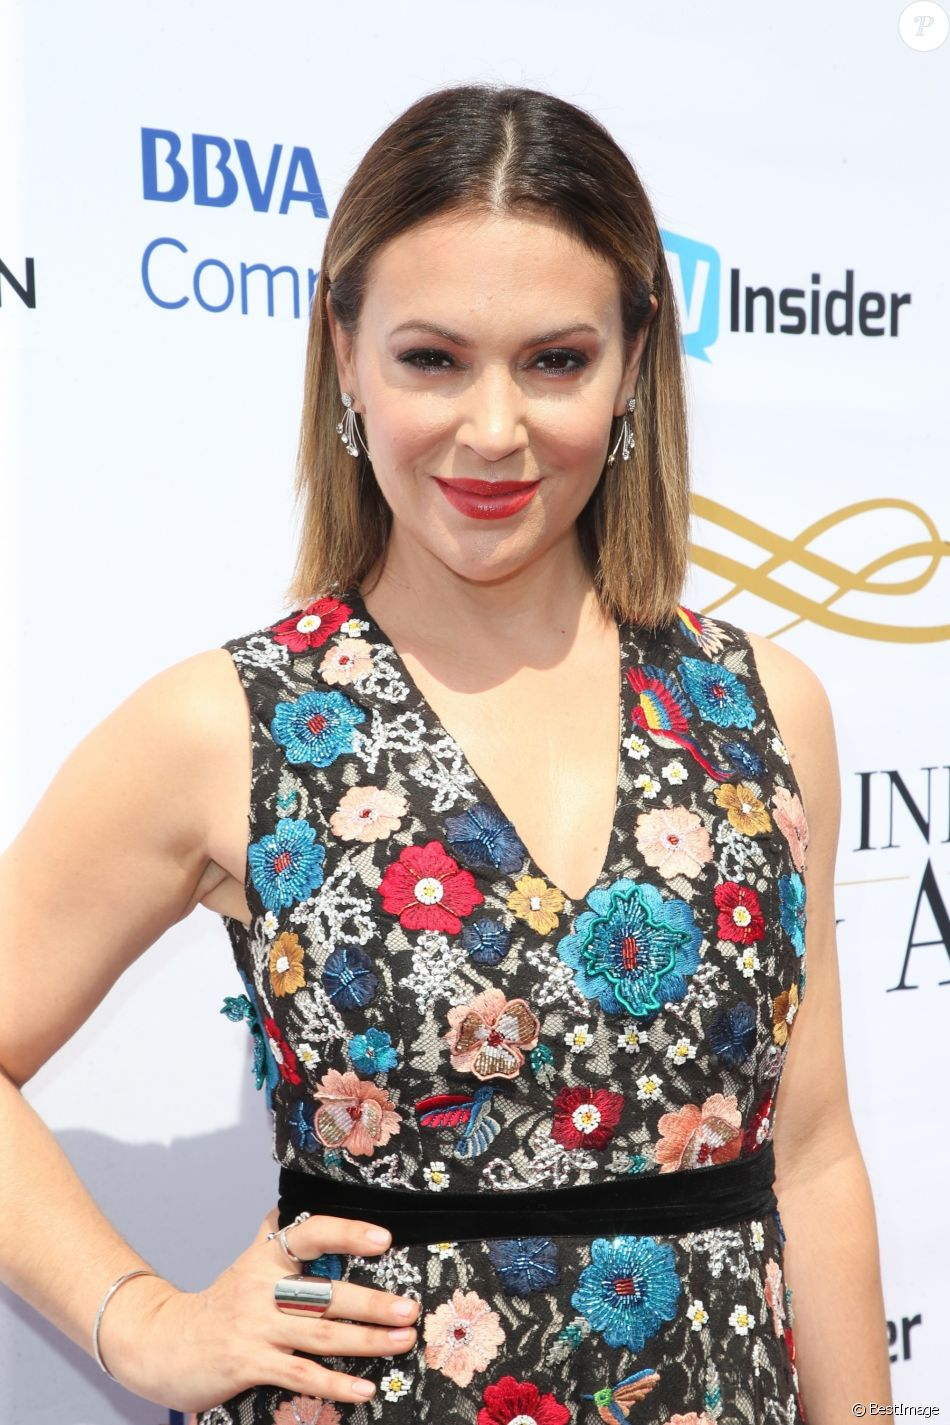 Alyssa Milano à la soirée caritative Television Industry Advocacy Awards à Hollywood, le 16 septembre 2017